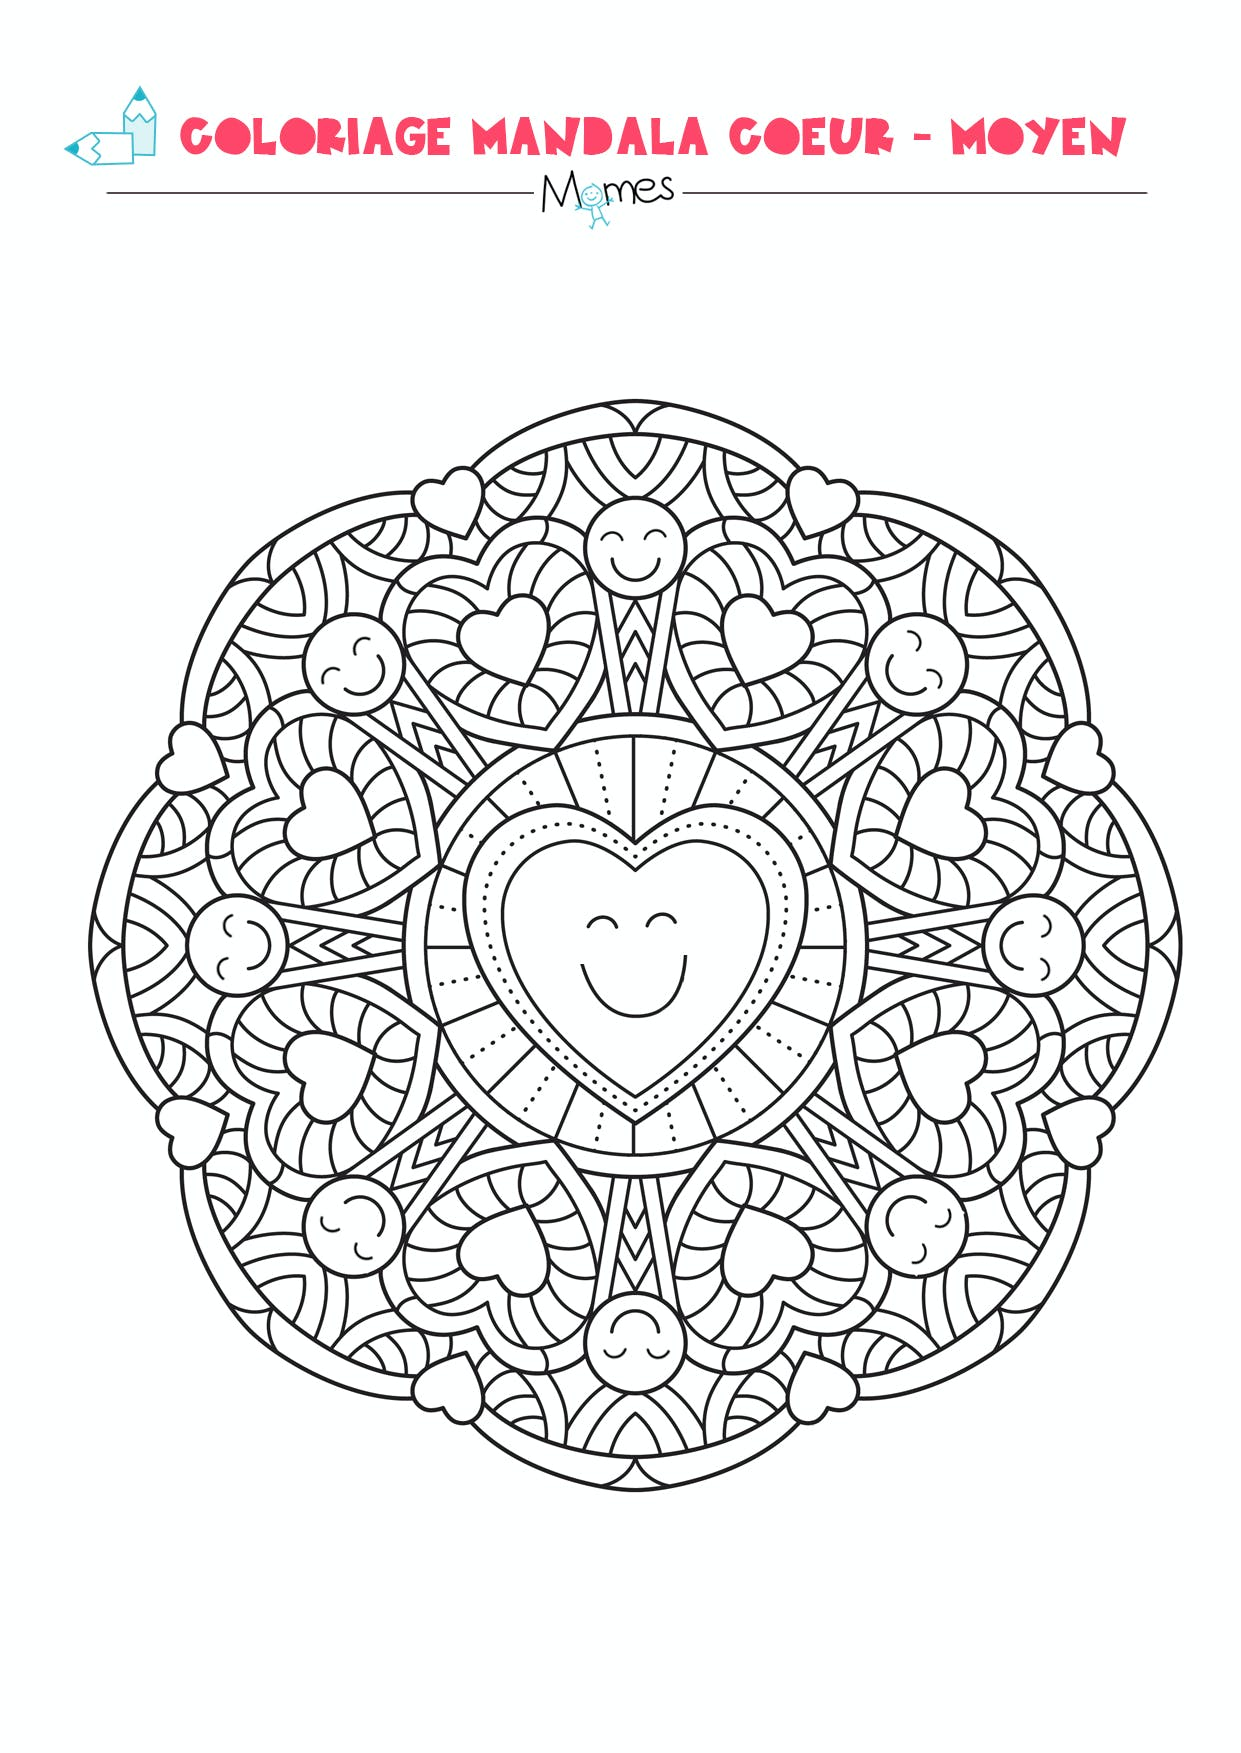 coloriage mandala moyen age meilleures id es coloriage pour les enfants. Black Bedroom Furniture Sets. Home Design Ideas